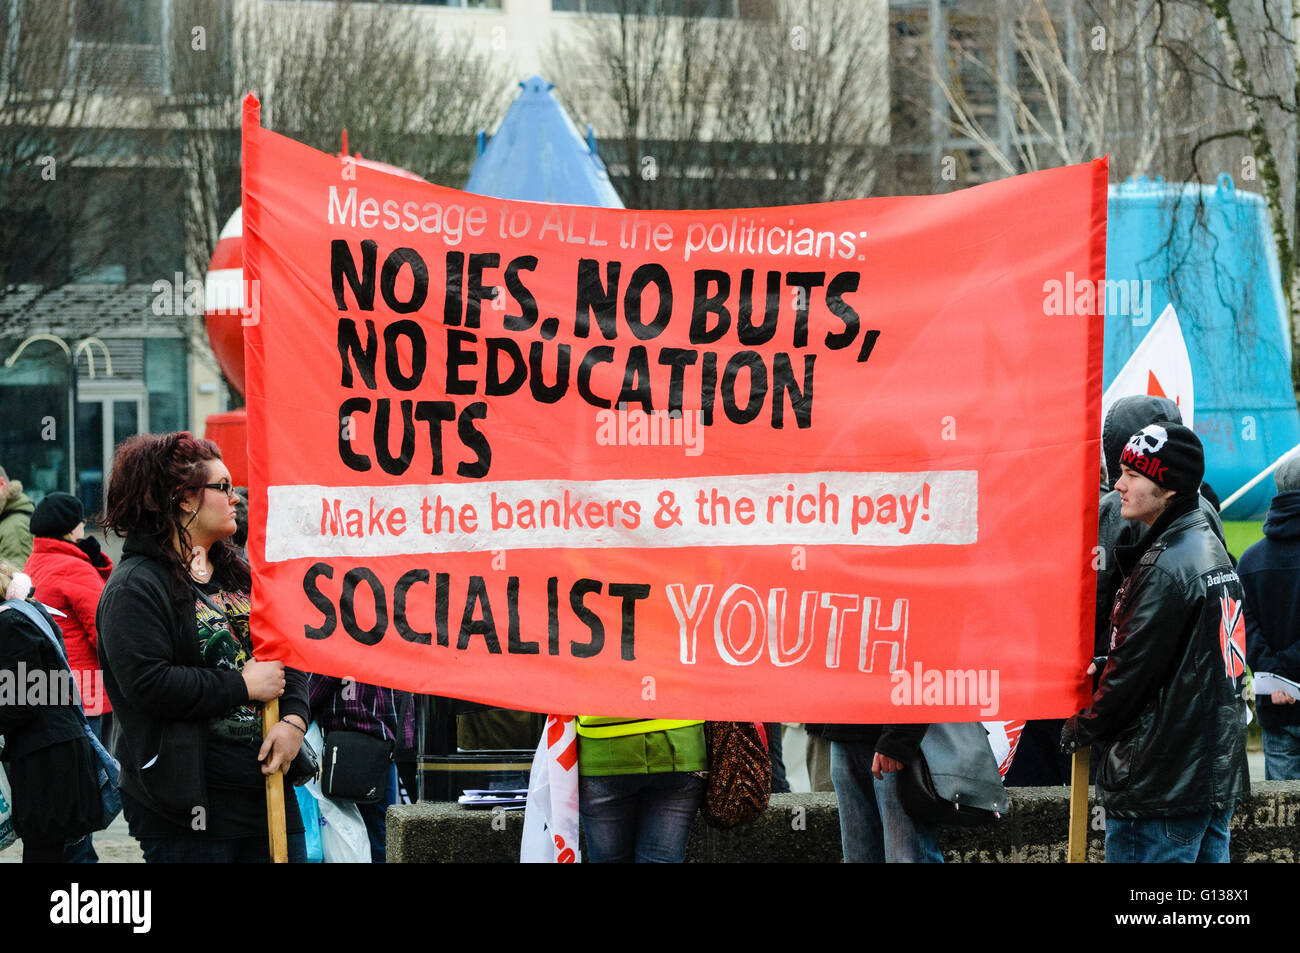 Belfast, Northern Ireland. 29 JAN 2011 -  Students protest against university education fee increases - Stock Image